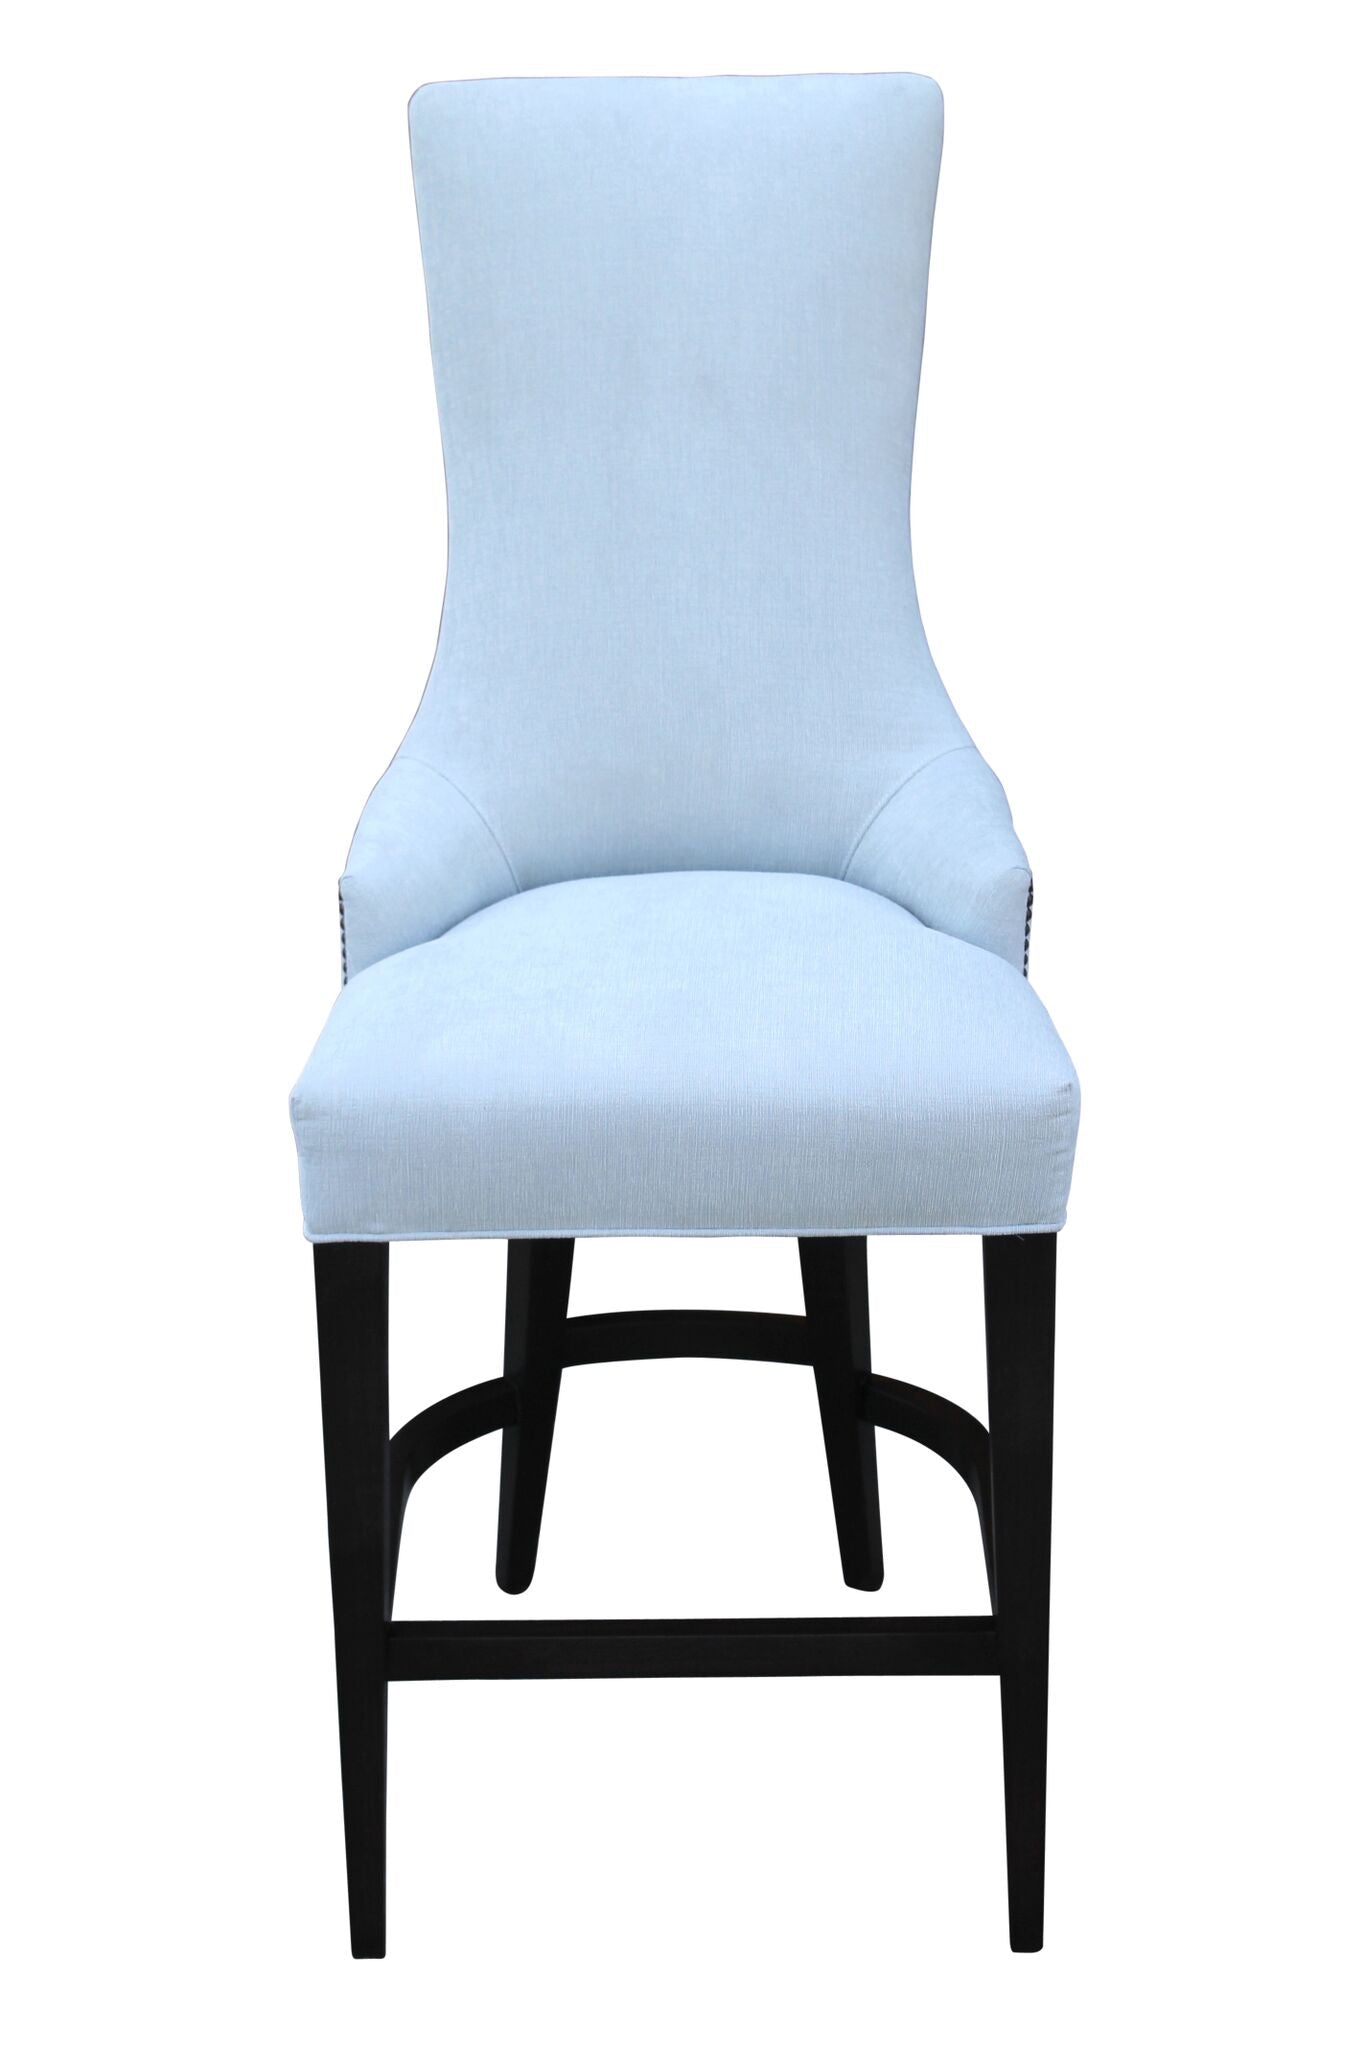 transitional bar height chair